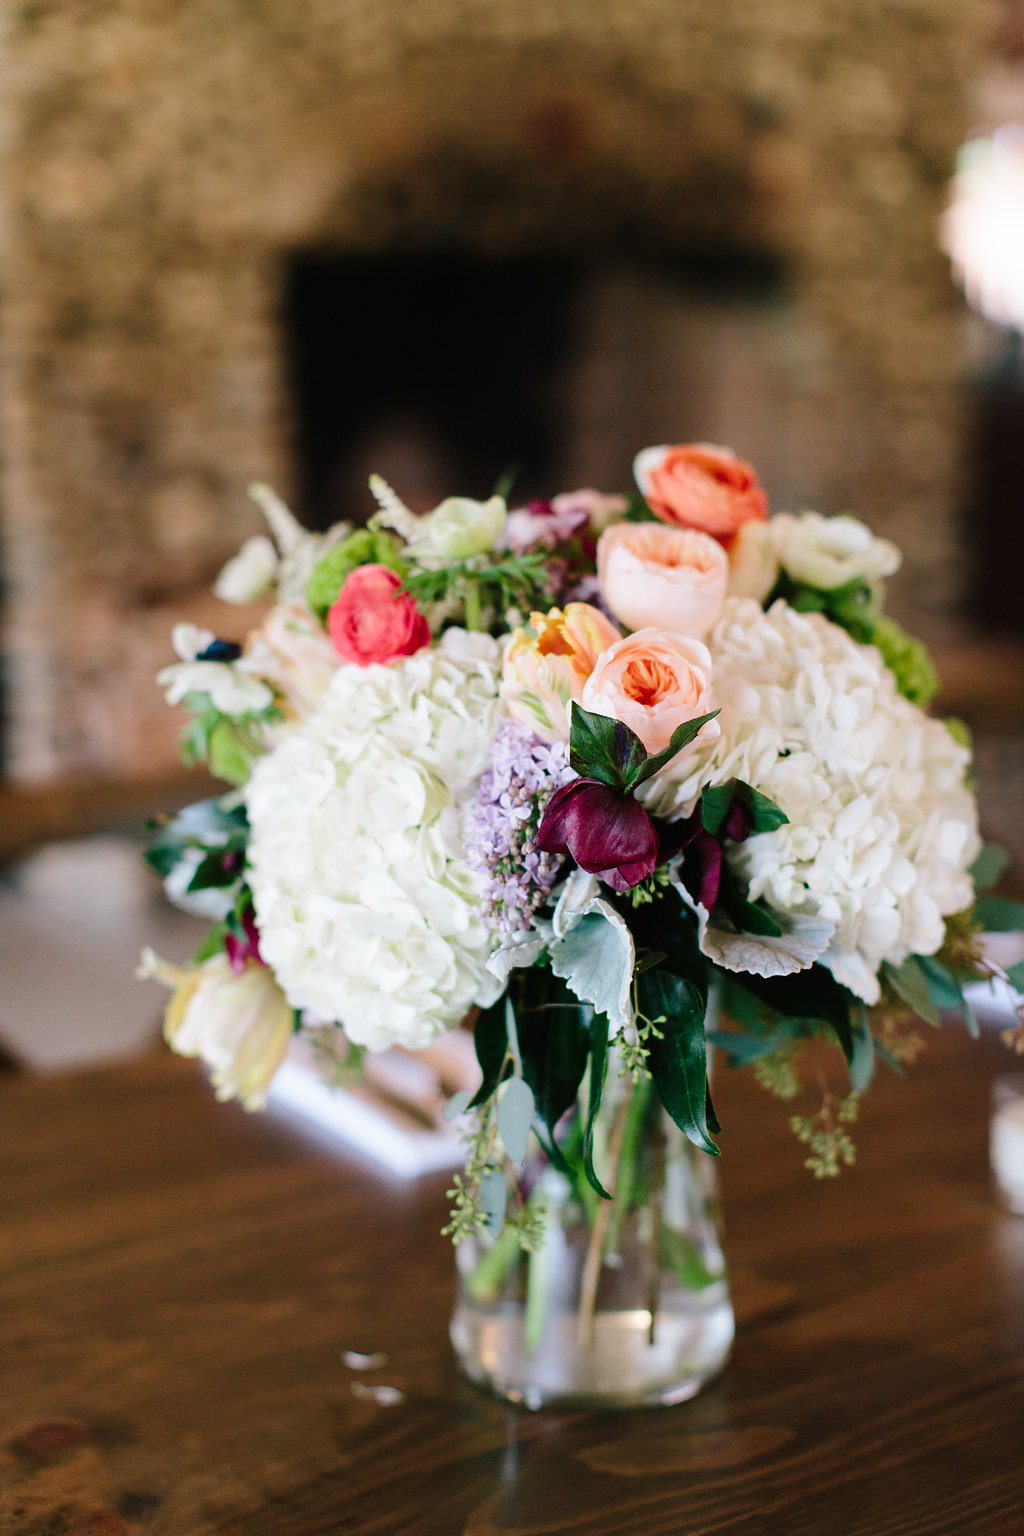 wedding-reception-guest-table-arrangement-greg-boulus-events-augusta-georgia.jpg